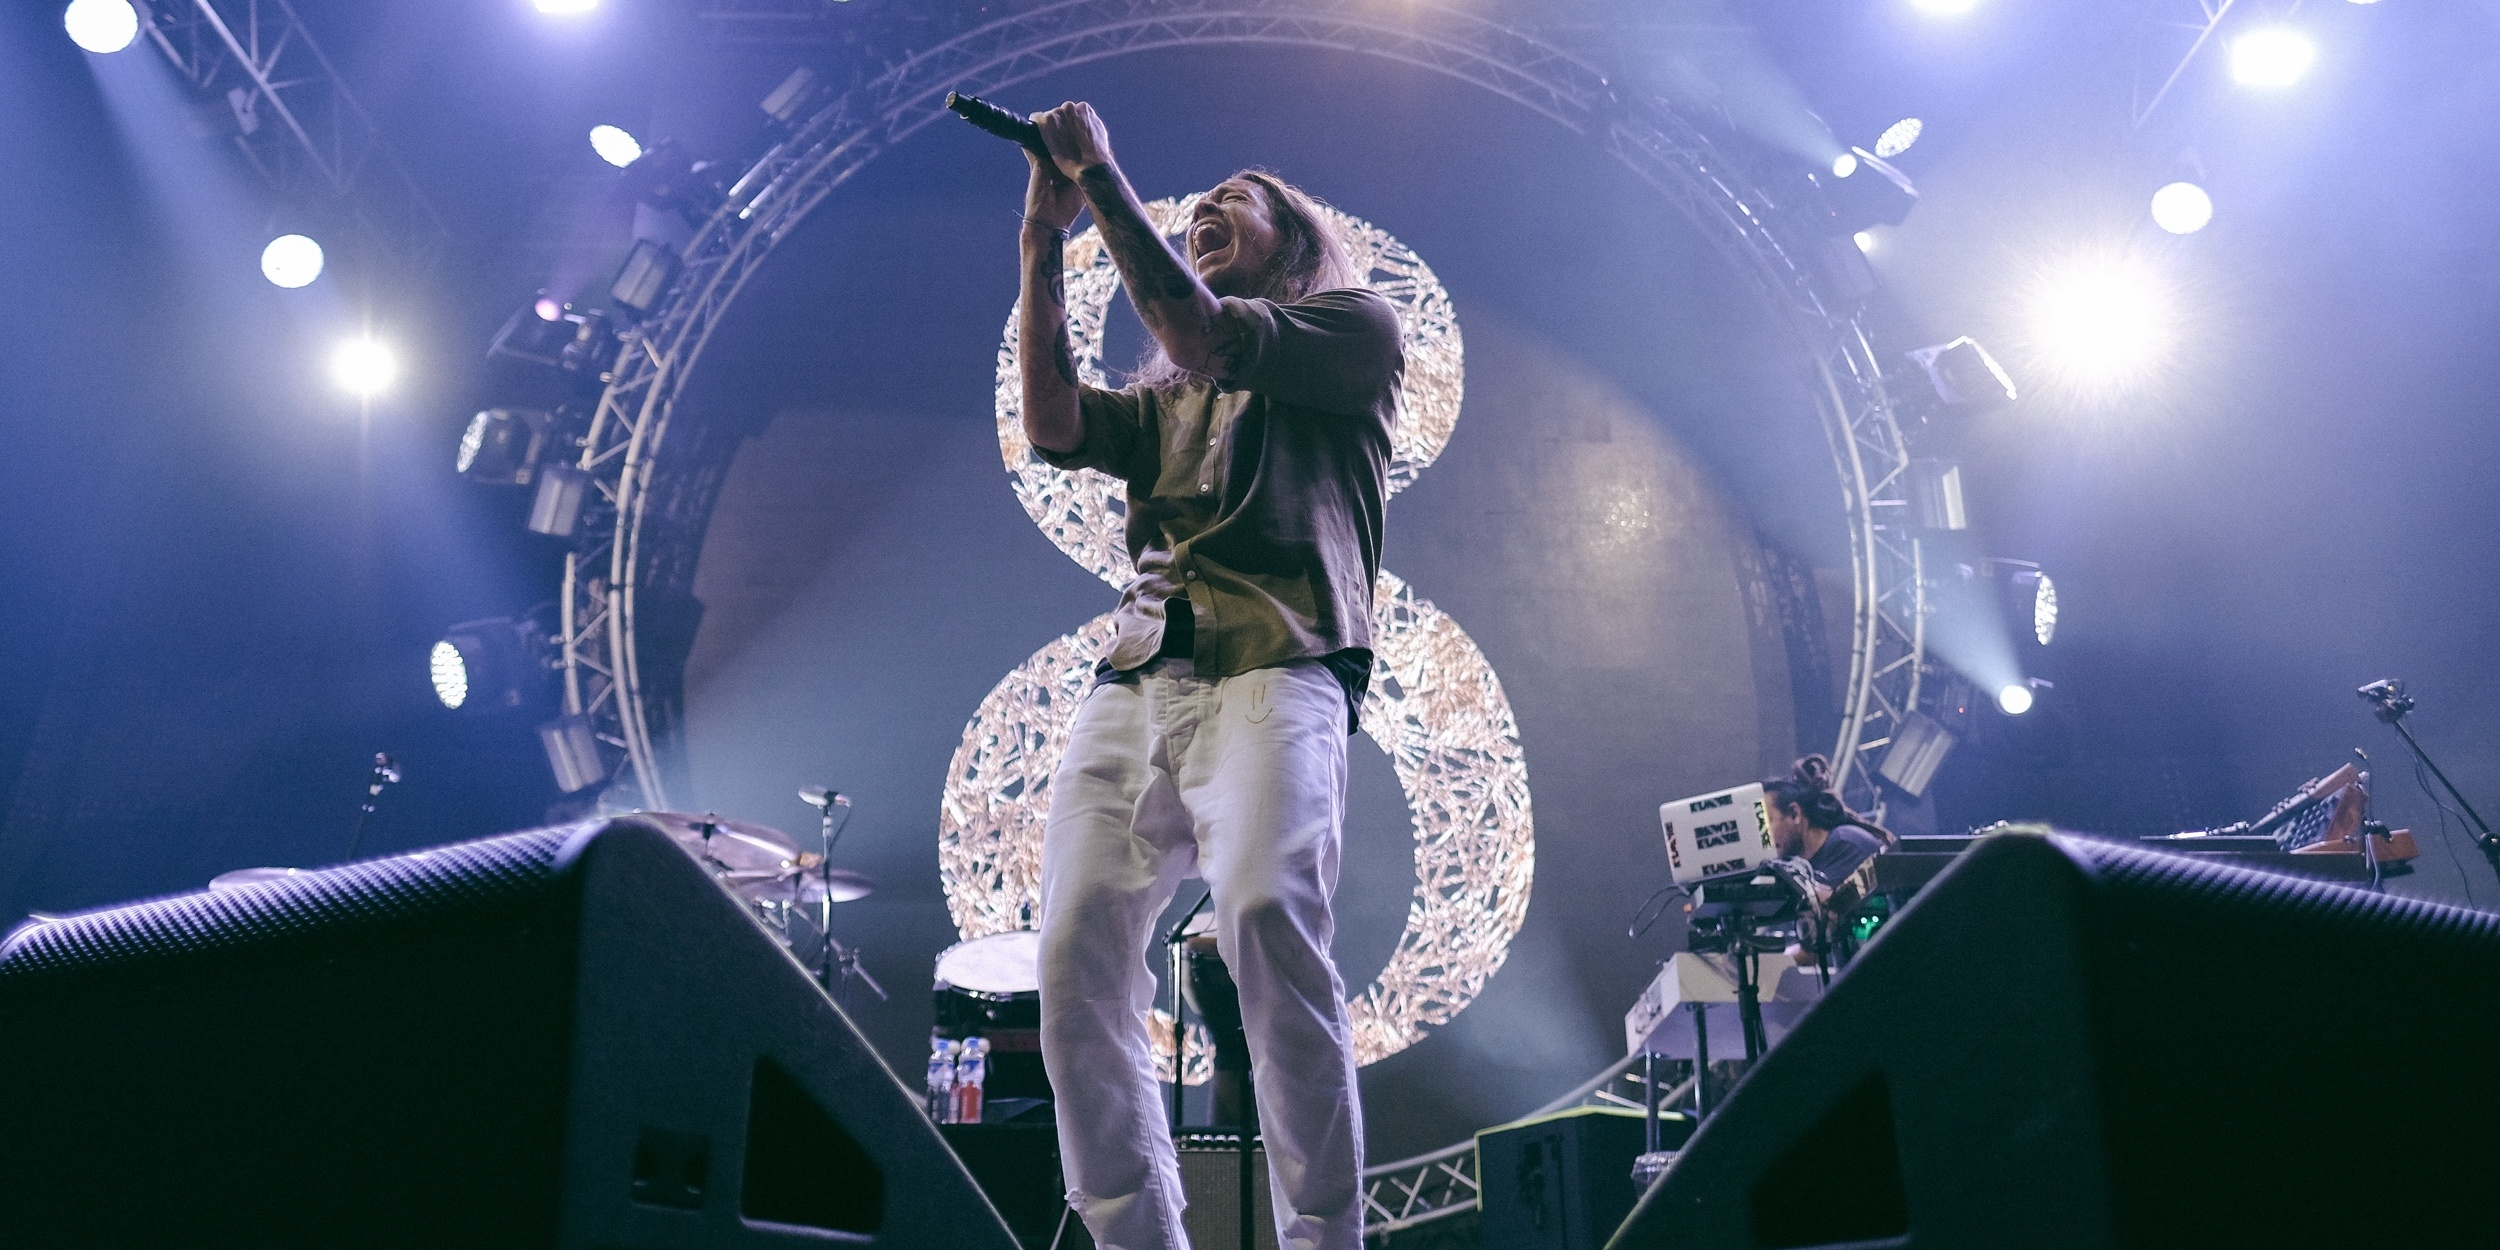 Raising the bar for rock legends, Incubus sets us back to the core of their music – gig report